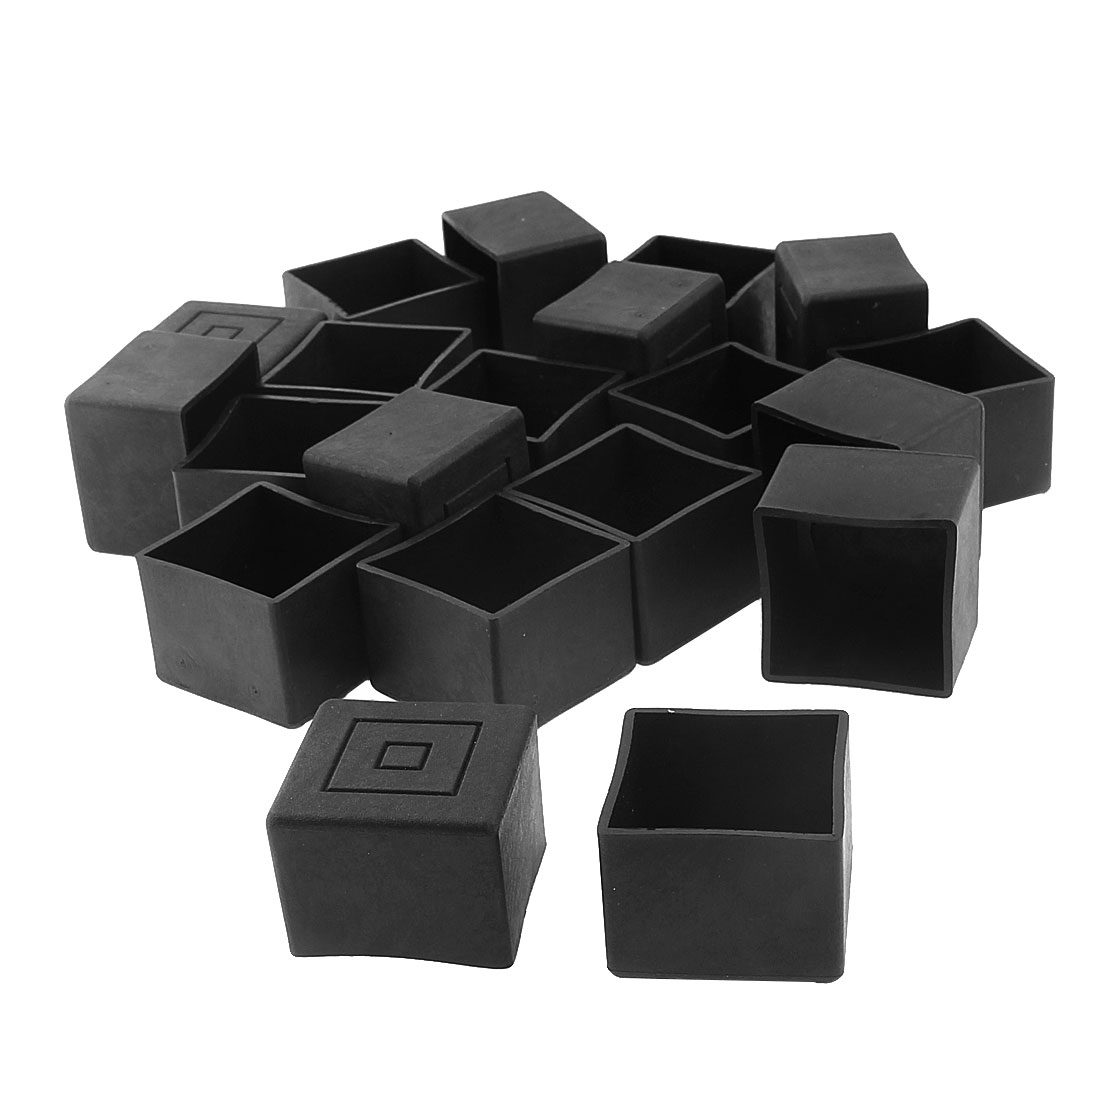 30mm x 30mm Square Shaped Furniture Table Chair Leg Foot Plastic Cover Cap Black 20pcs